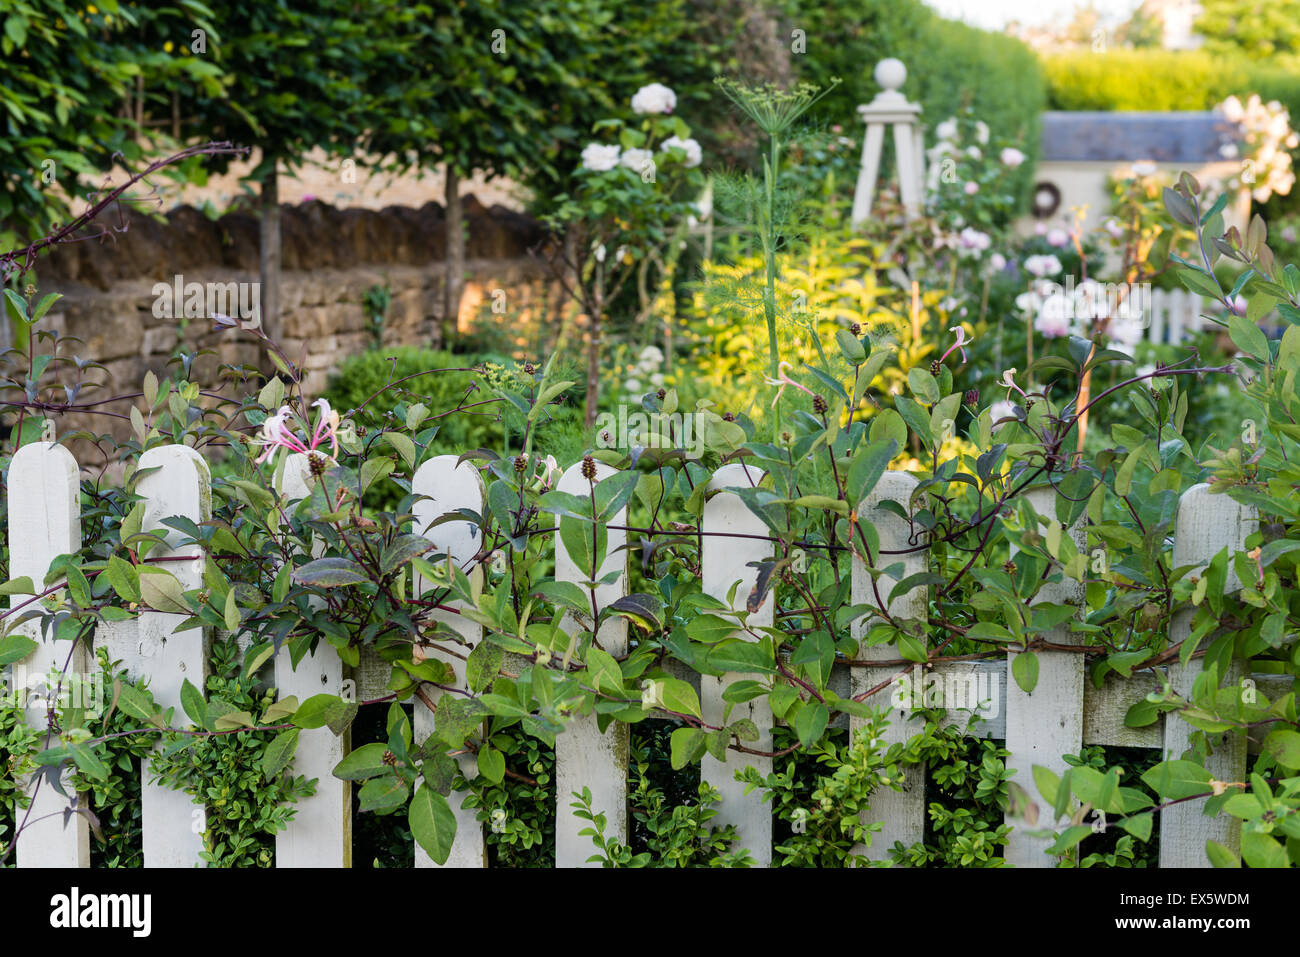 Honeysuckle (Lonicera) growing along a white picket fence - Stock Image